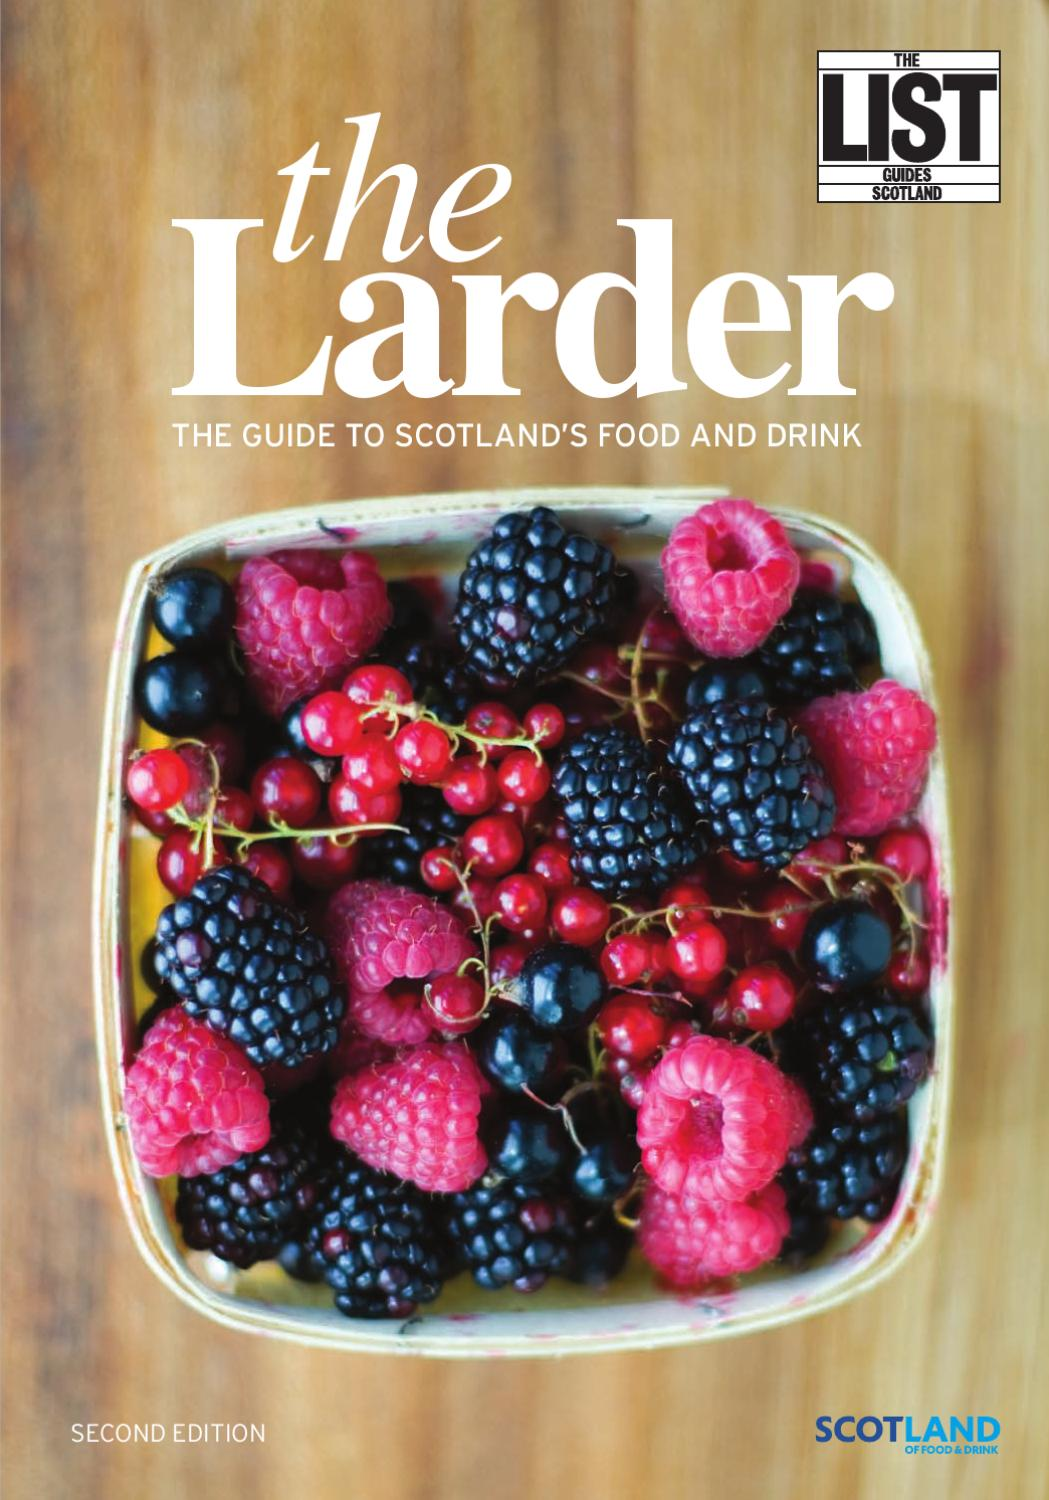 The Larder (2nd Edition) by The List Ltd - issuu